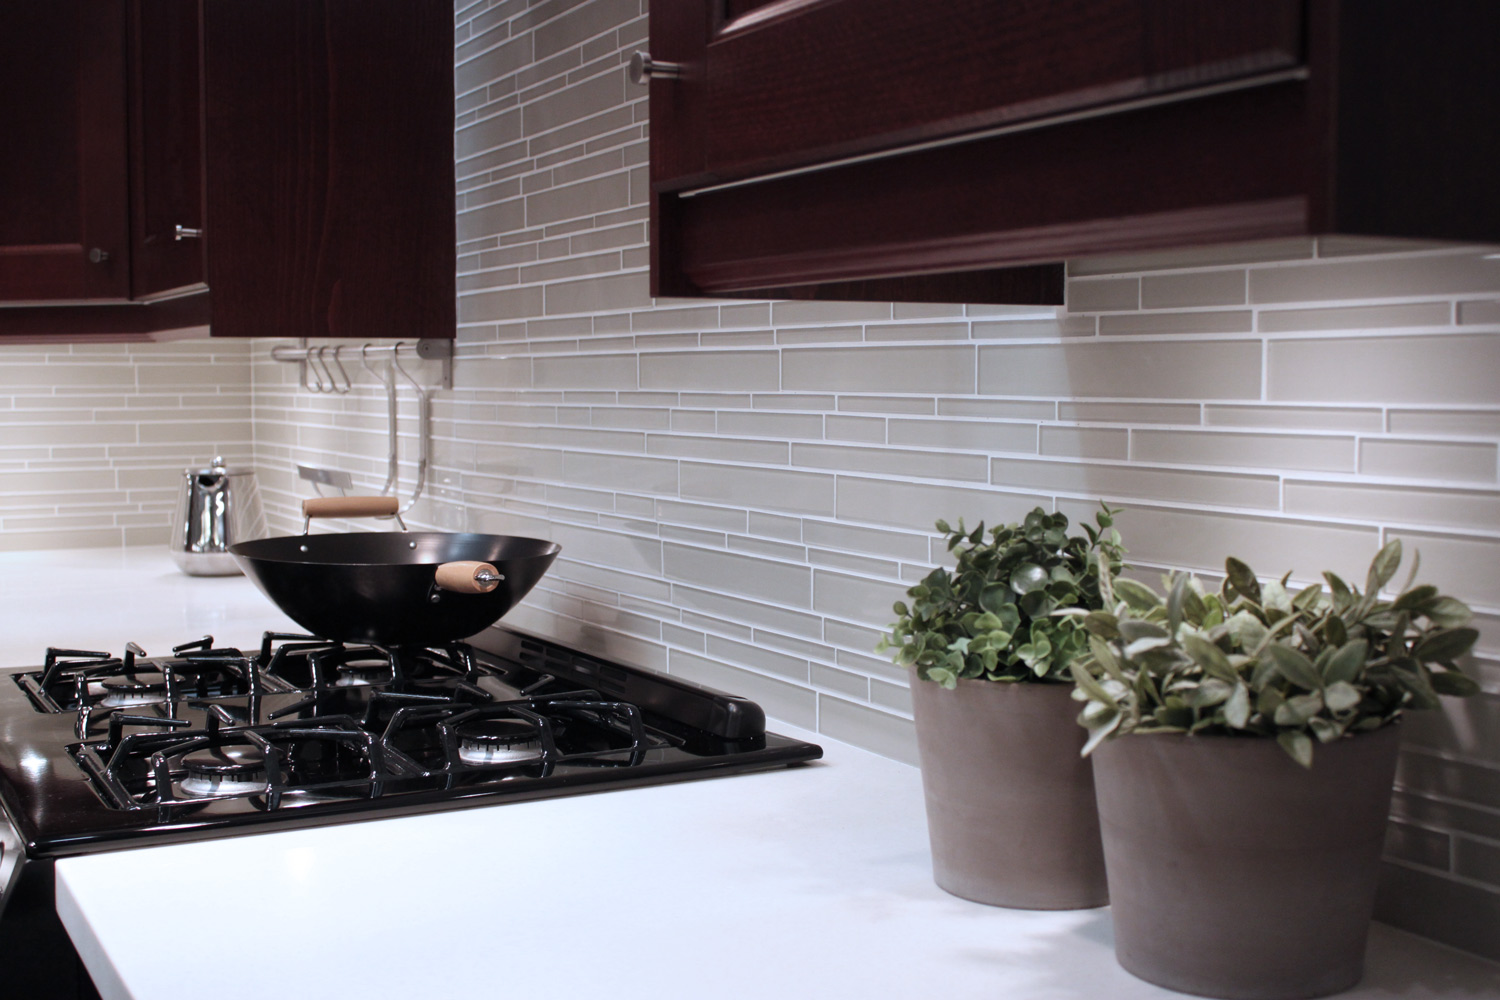 mirror tile backsplash kitchen glass subway tile backsplash innovative ideas wilson rose garden 3210